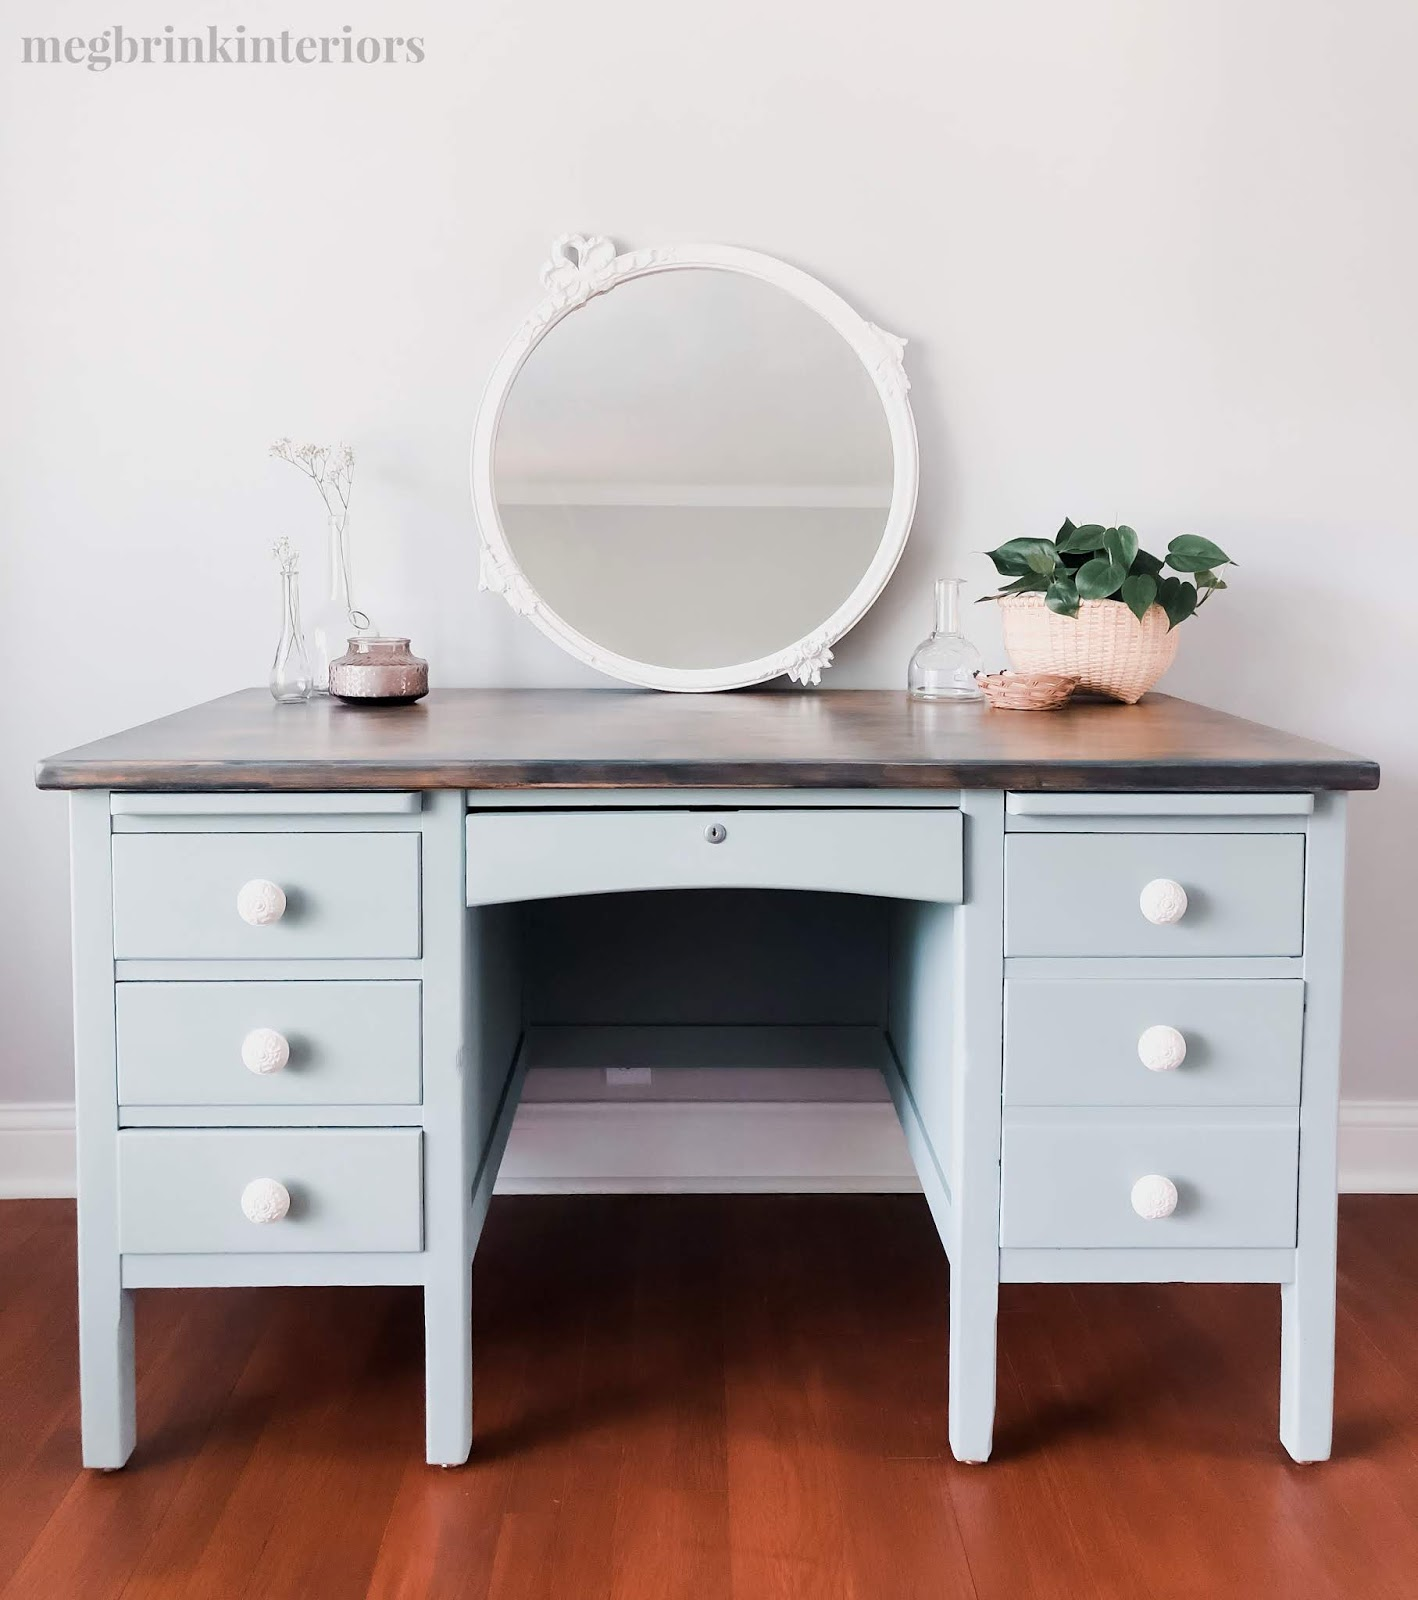 Come check out how I transformed this old vintage desk with a gorgeous dusty blue green color from Country Chic Paint!